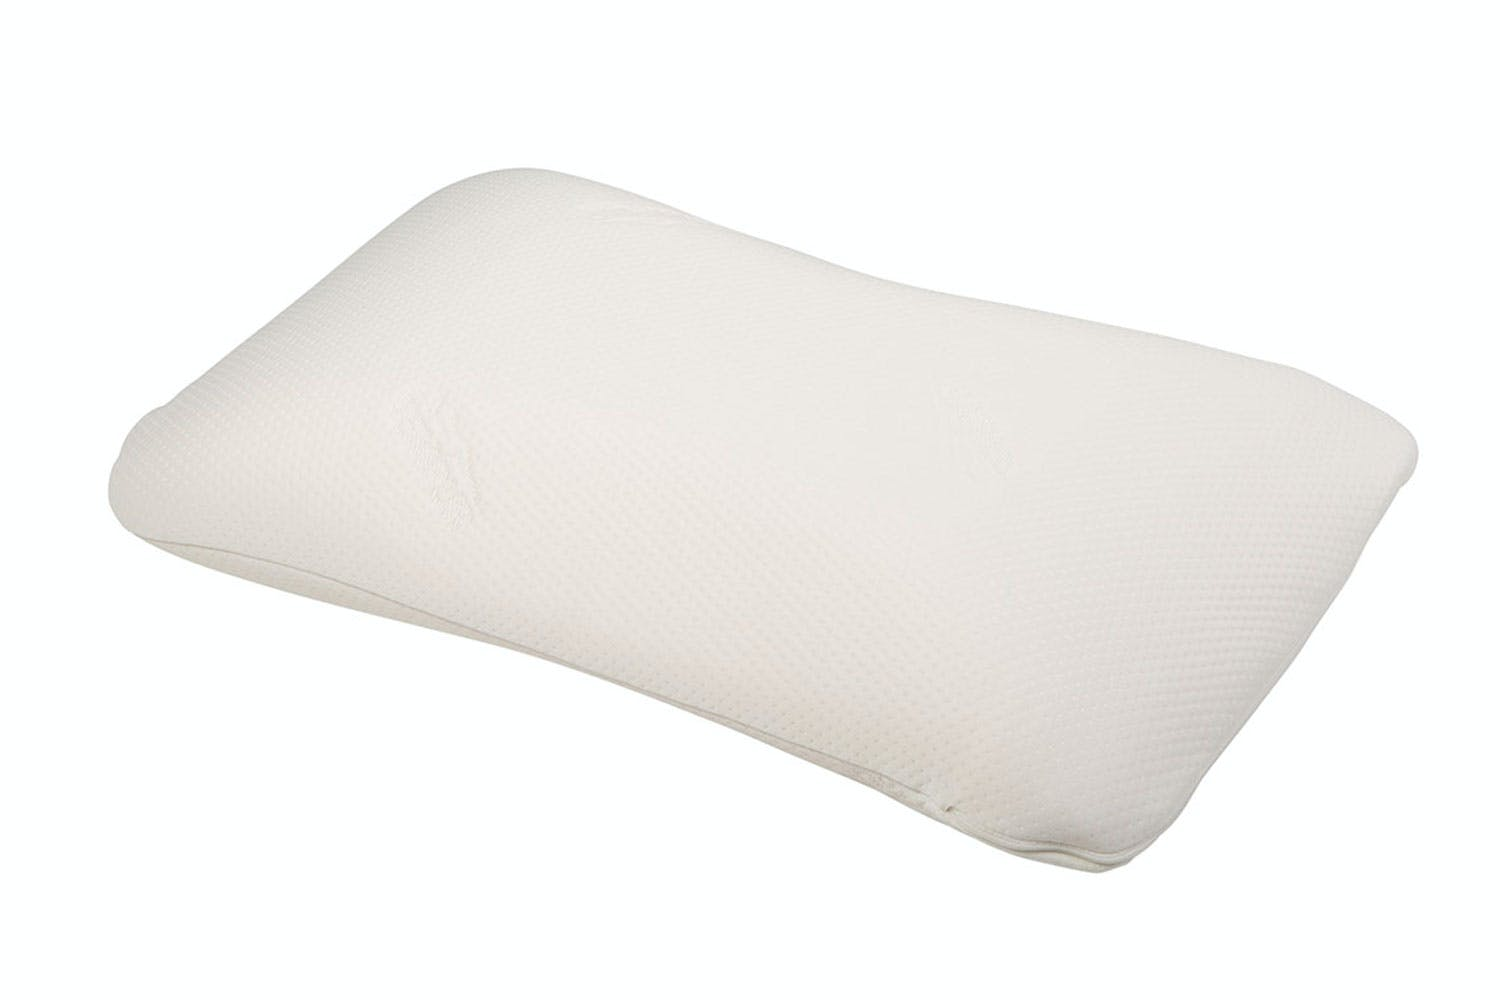 Symphony Pillow - Small - Tempur